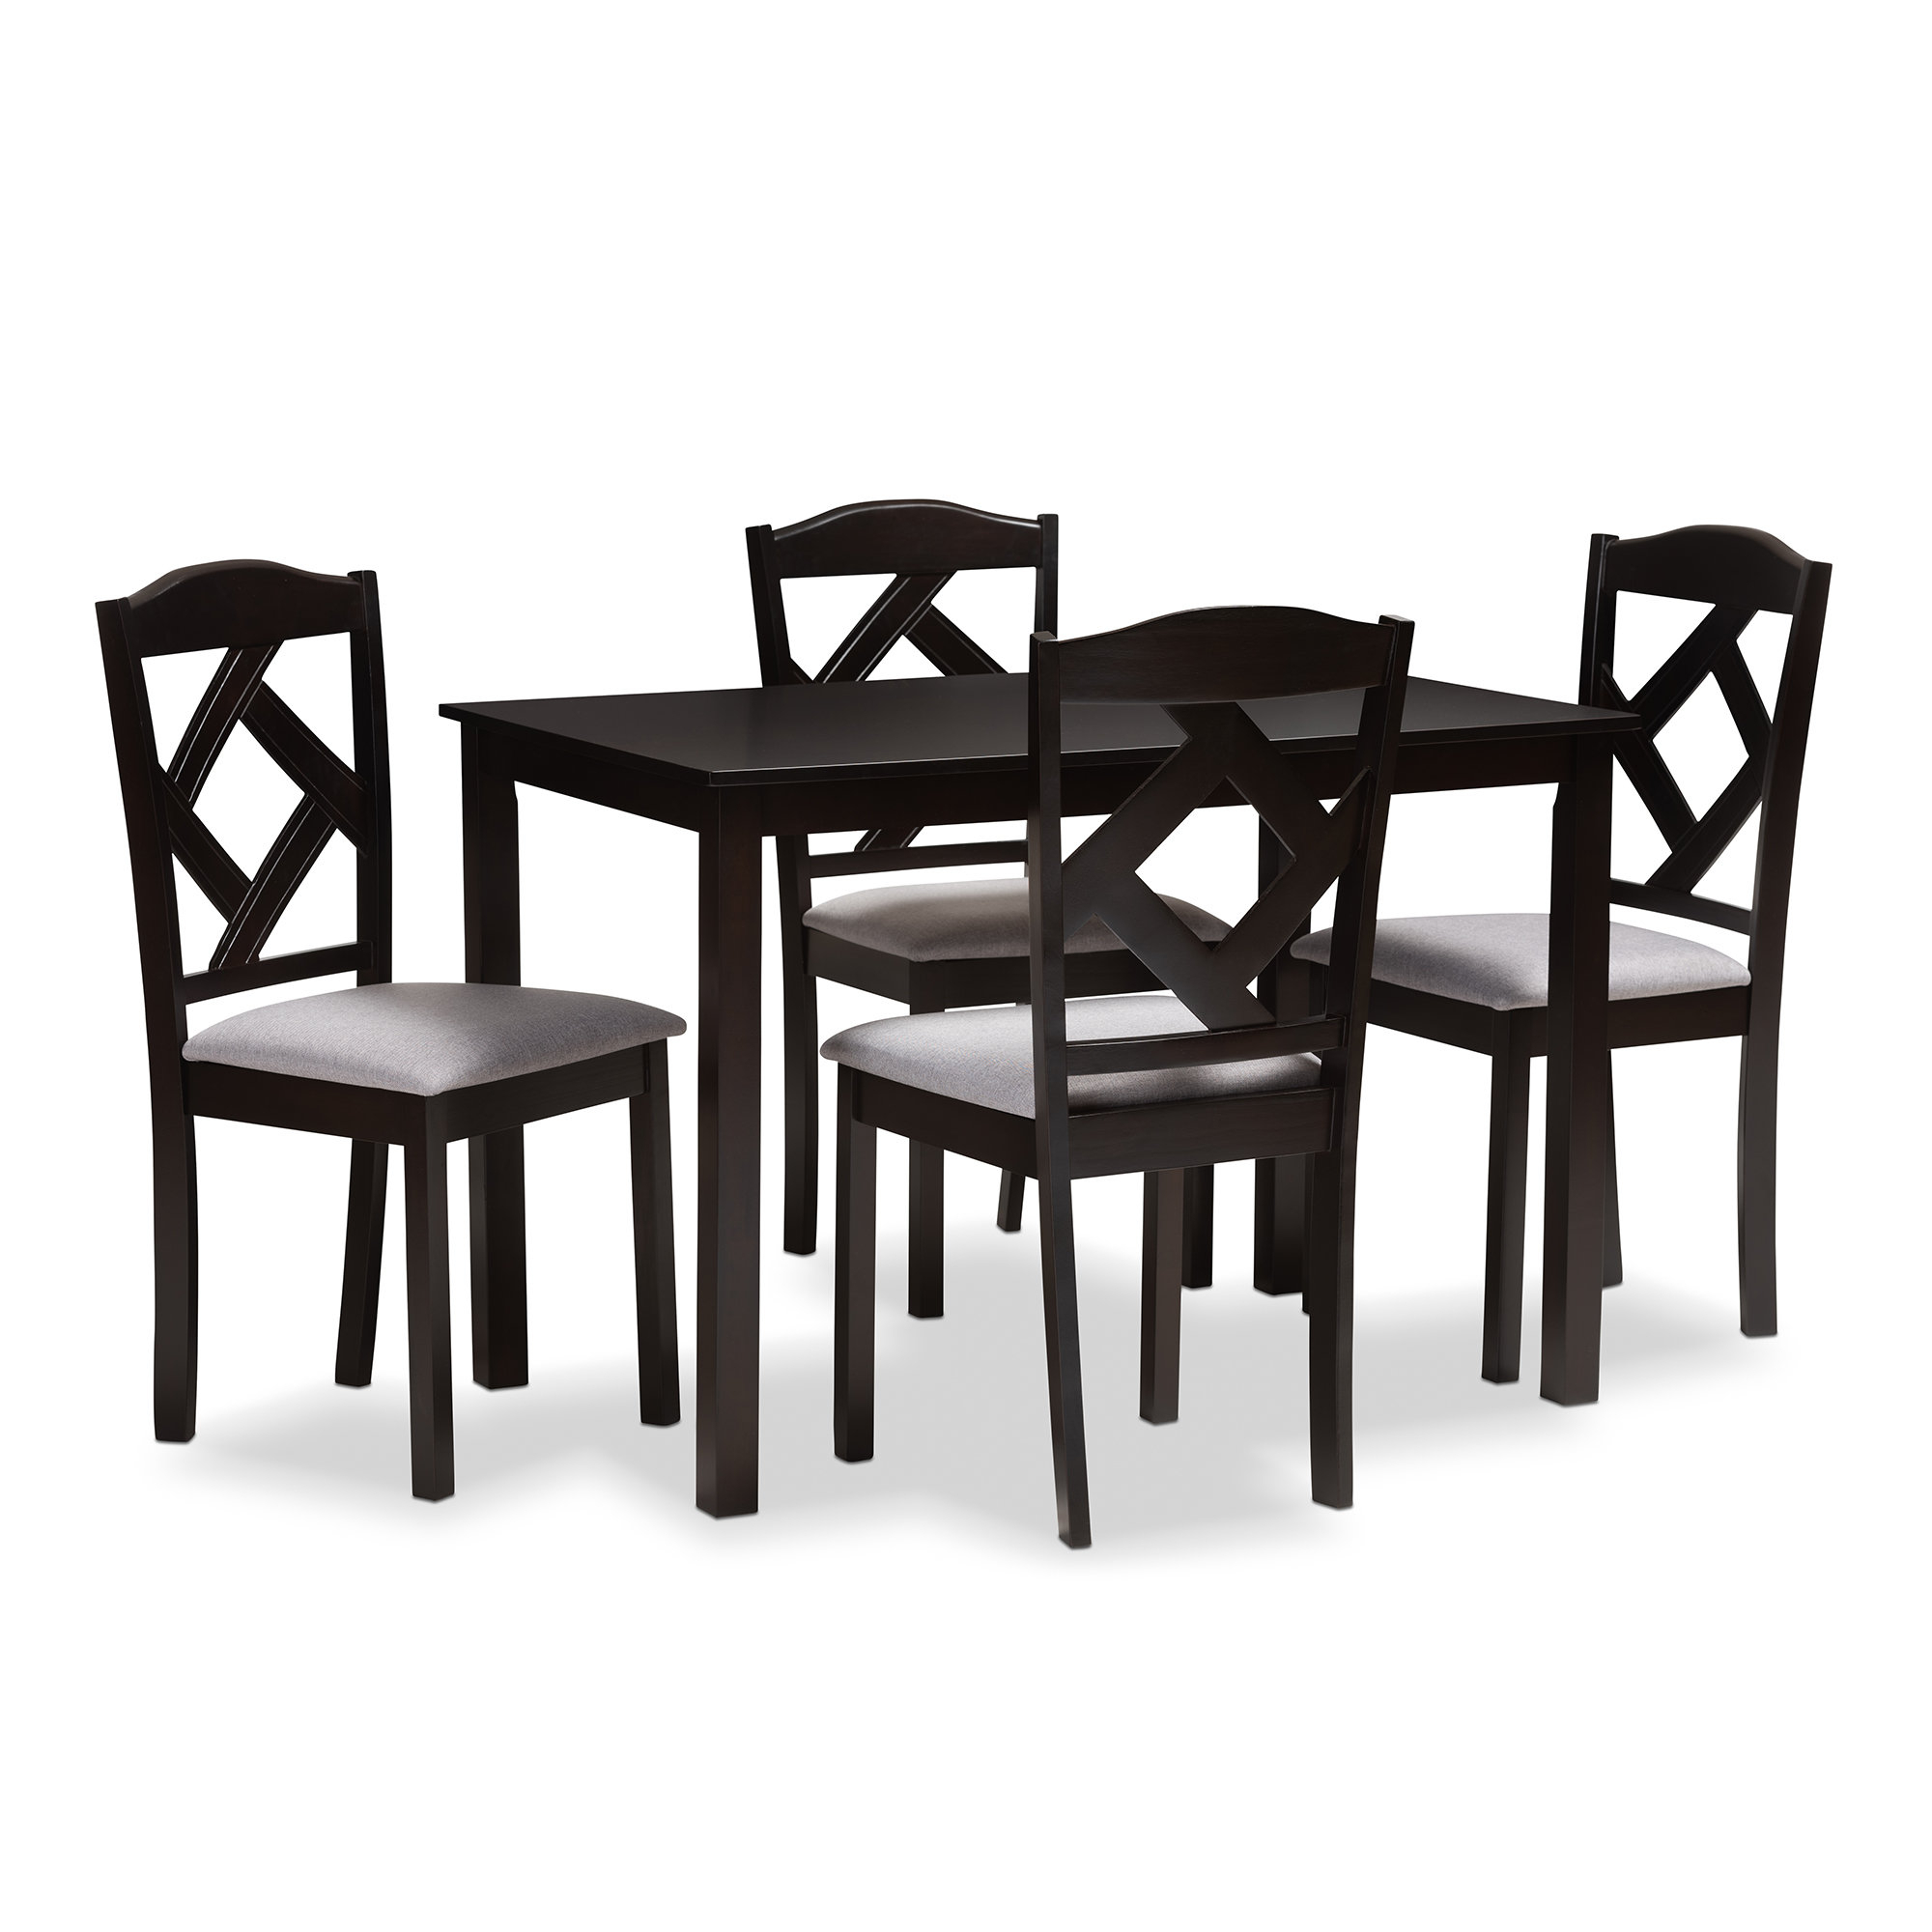 Sundberg 5 Piece Solid Wood Dining Sets Intended For Most Up To Date Yarmouth 5 Piece Dining Set (View 12 of 20)